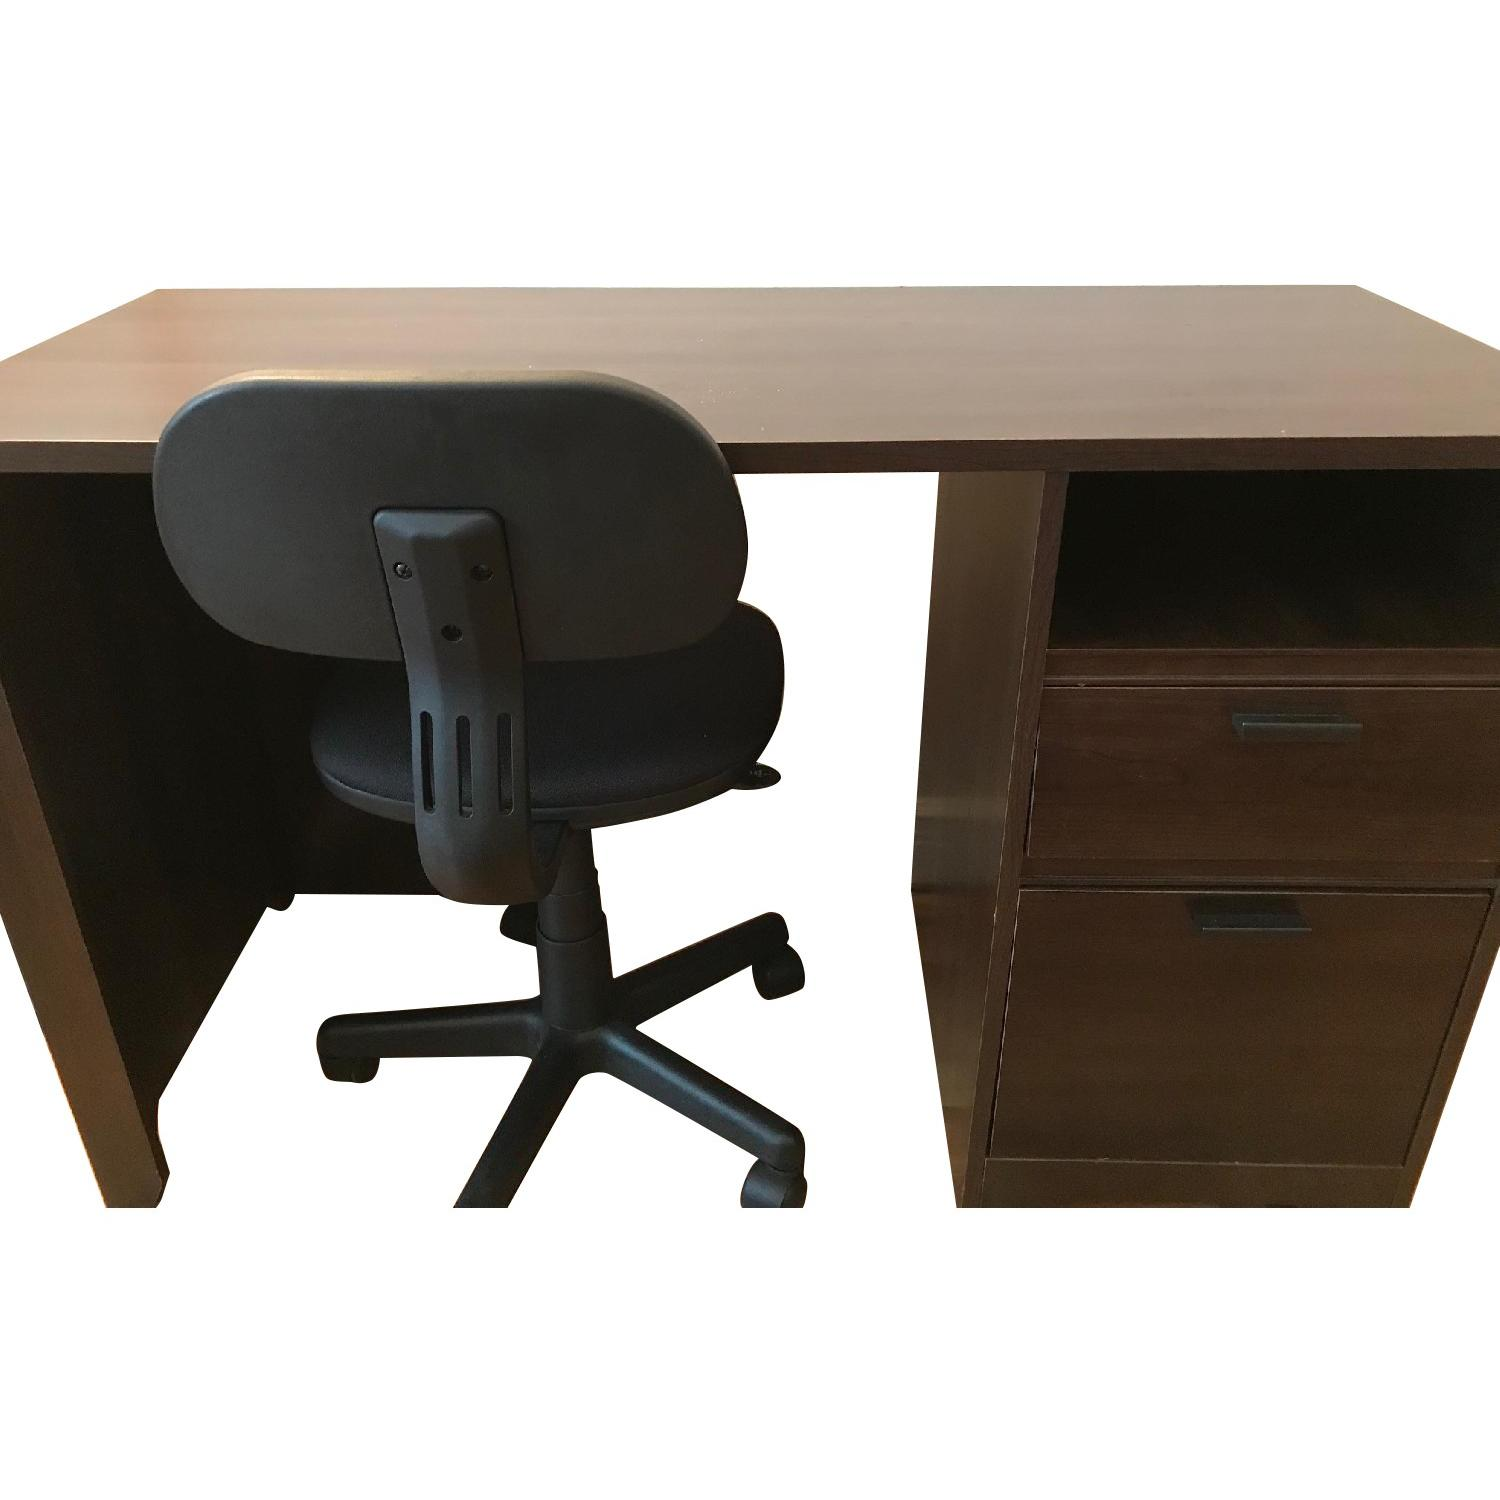 Target Office Desk & Chair